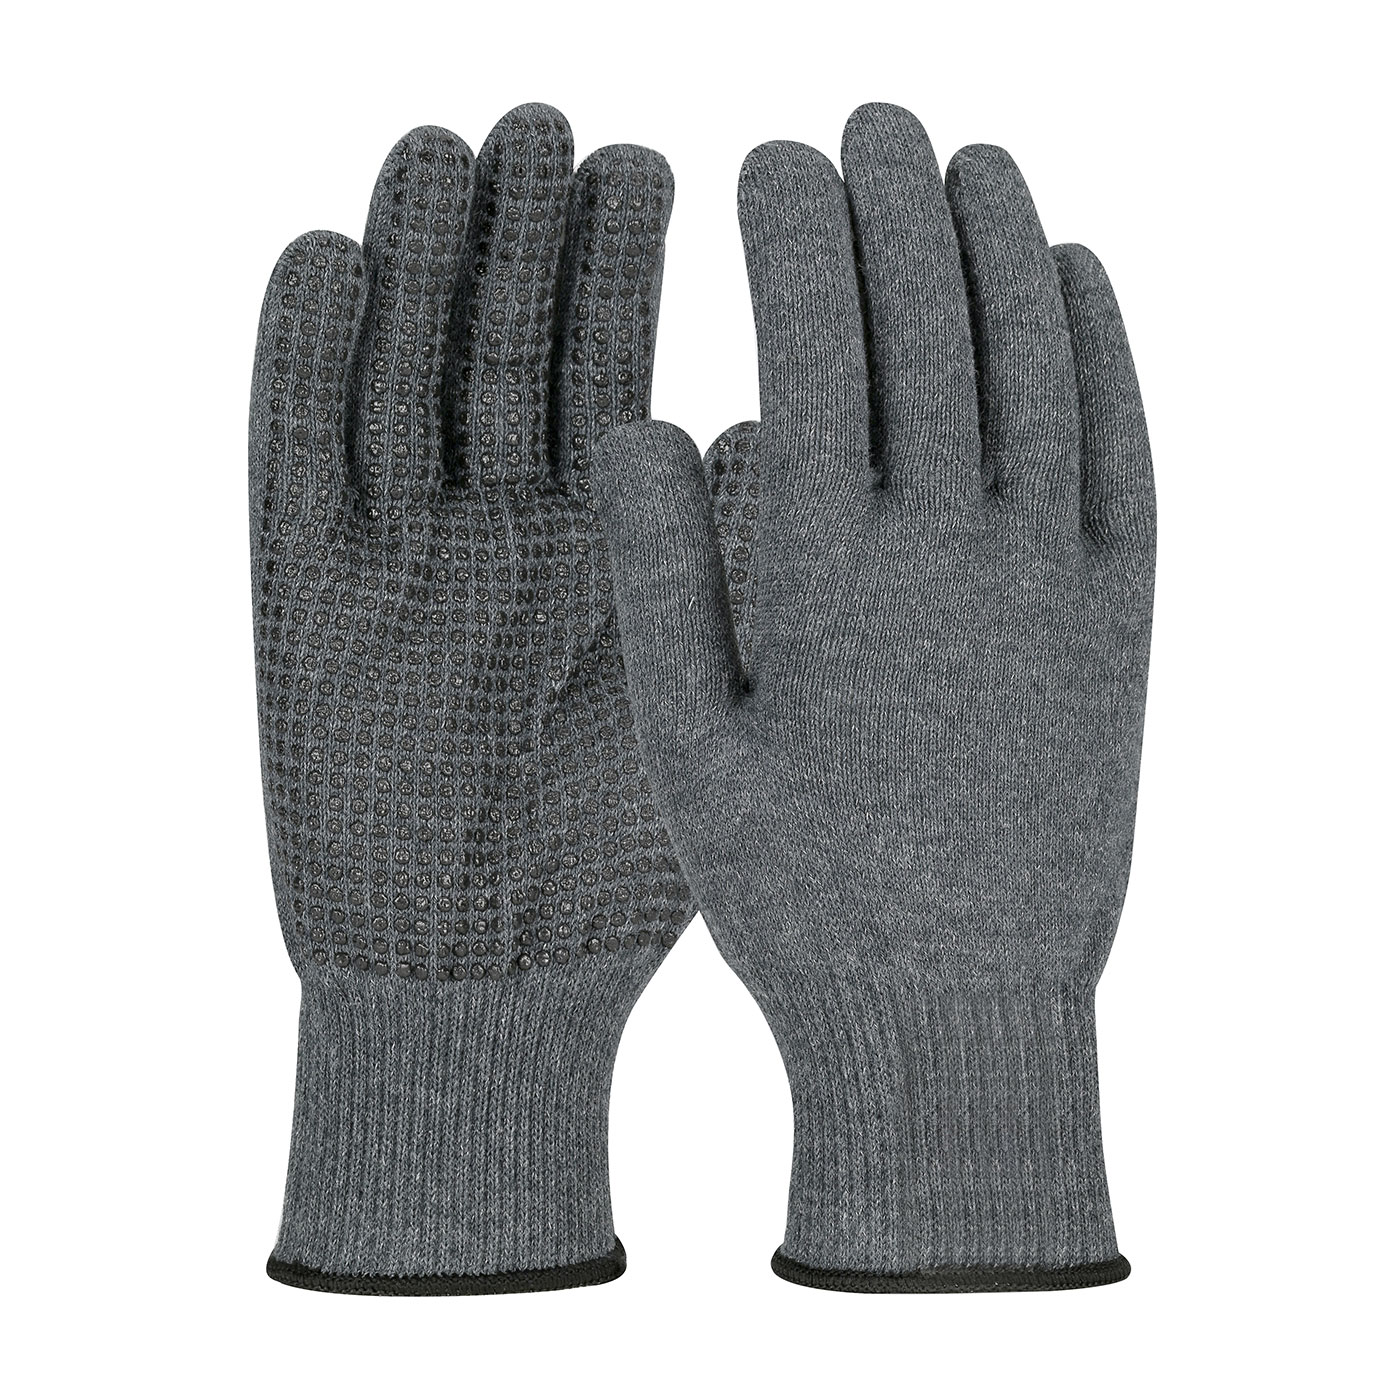 08-KA750PD PIP® ACP Technology™ A4 Kevlar® Glove and Black PVC Dot Grip